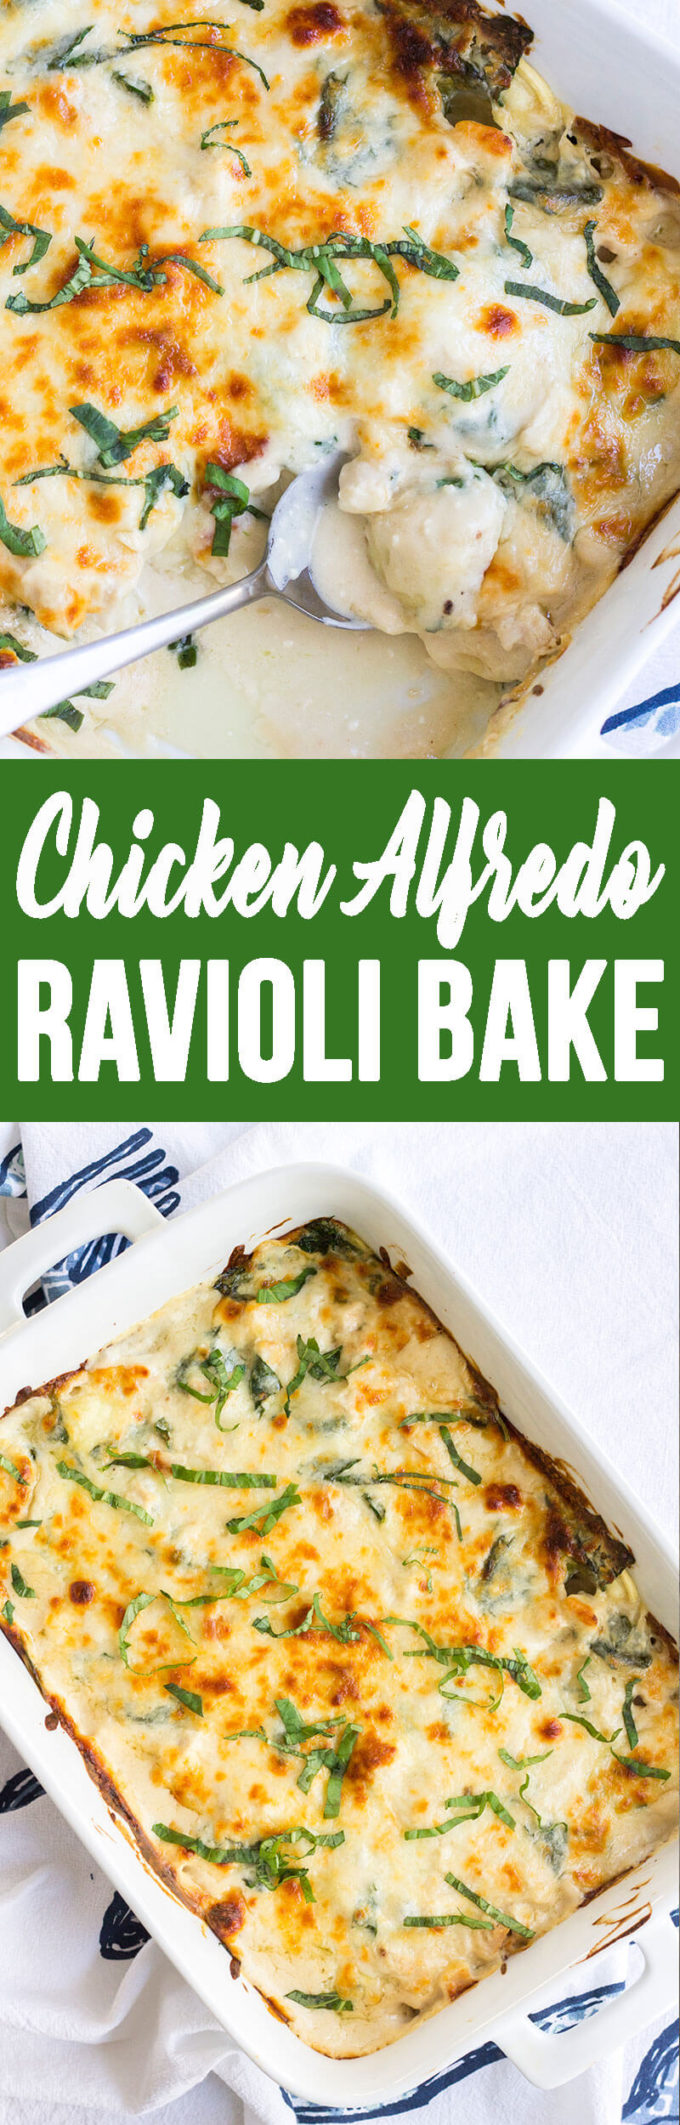 Chicken alfredo ravioli bake, easy and creamy!